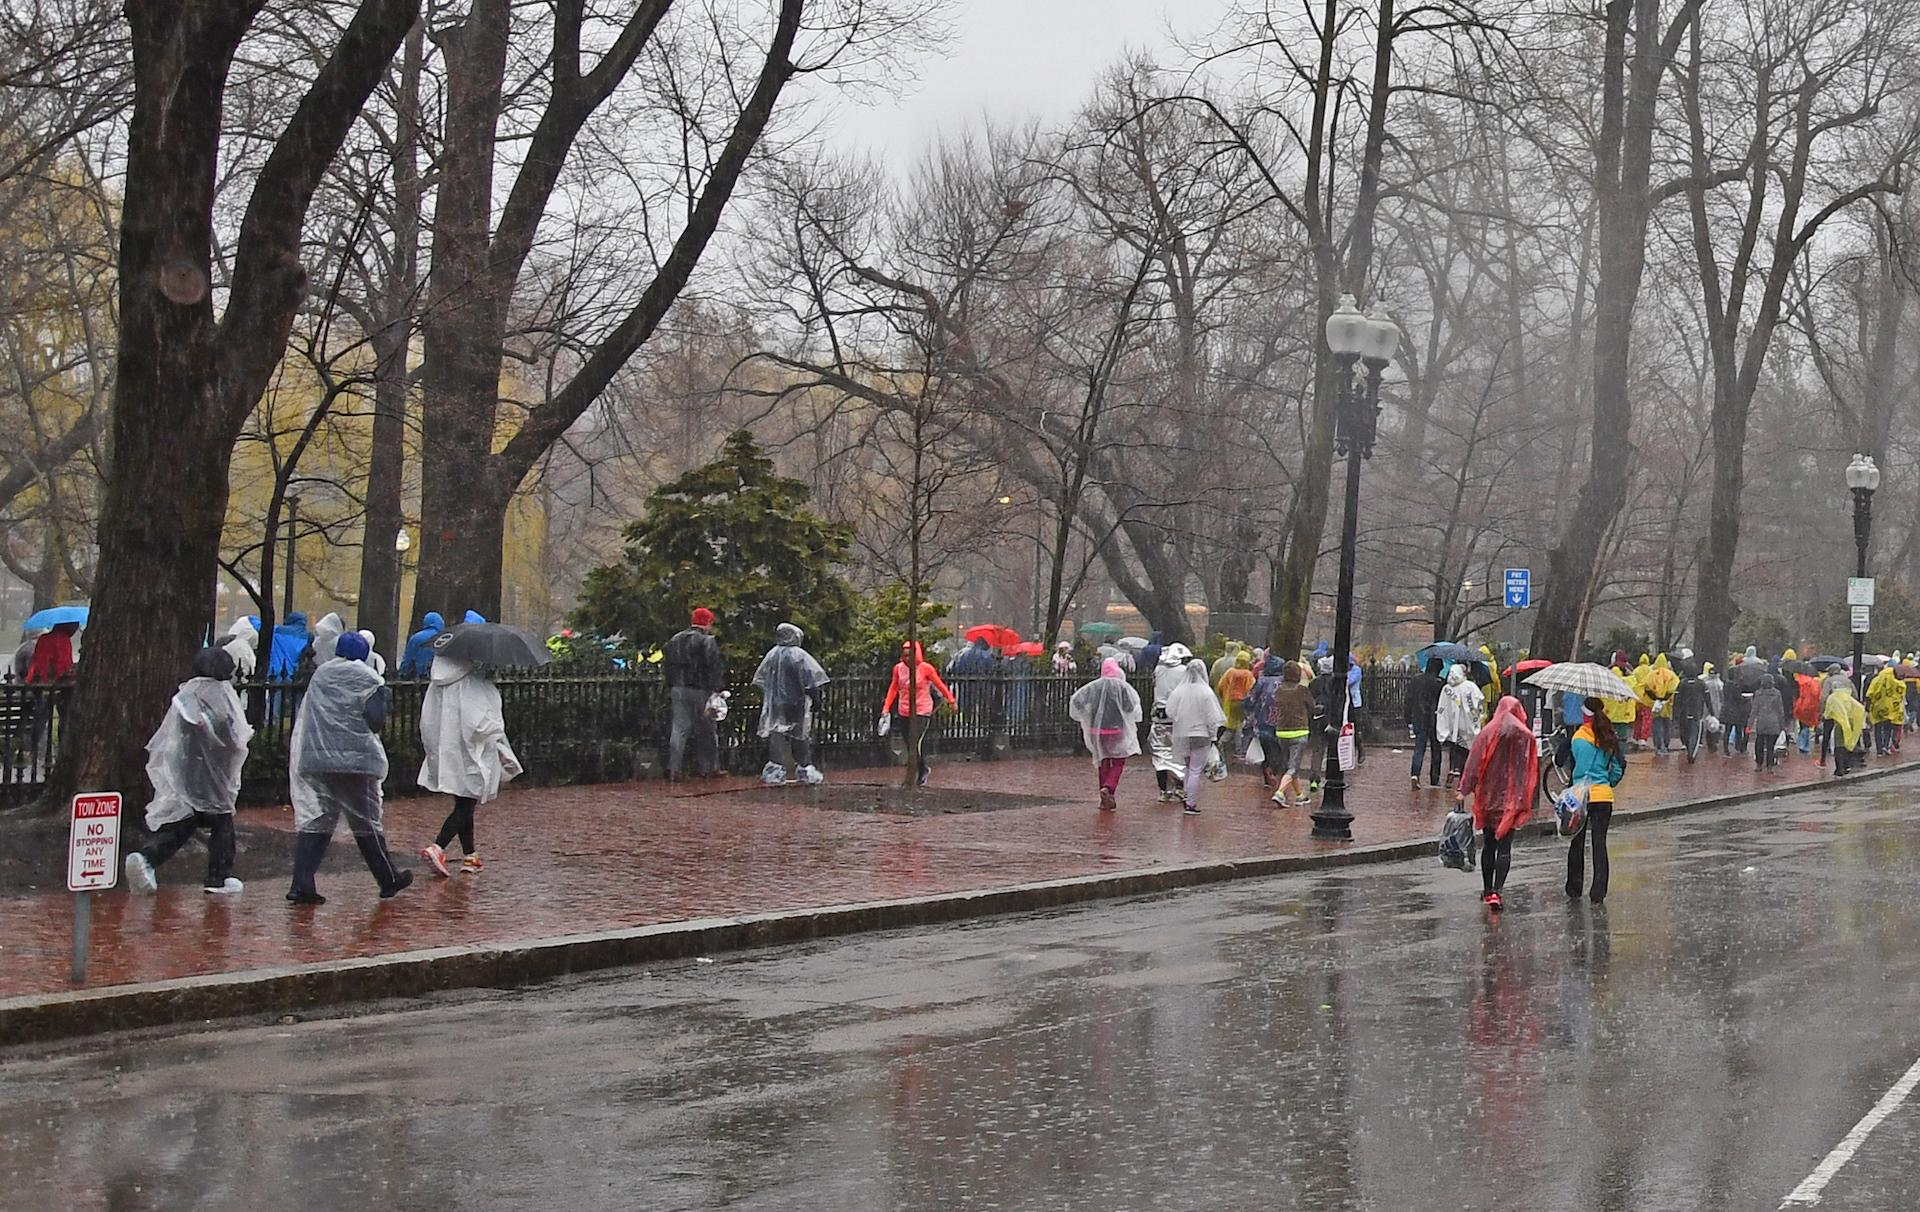 A rainy day, with umbrella-carrying pedestrians walking on the sidwalks flanking the public garden